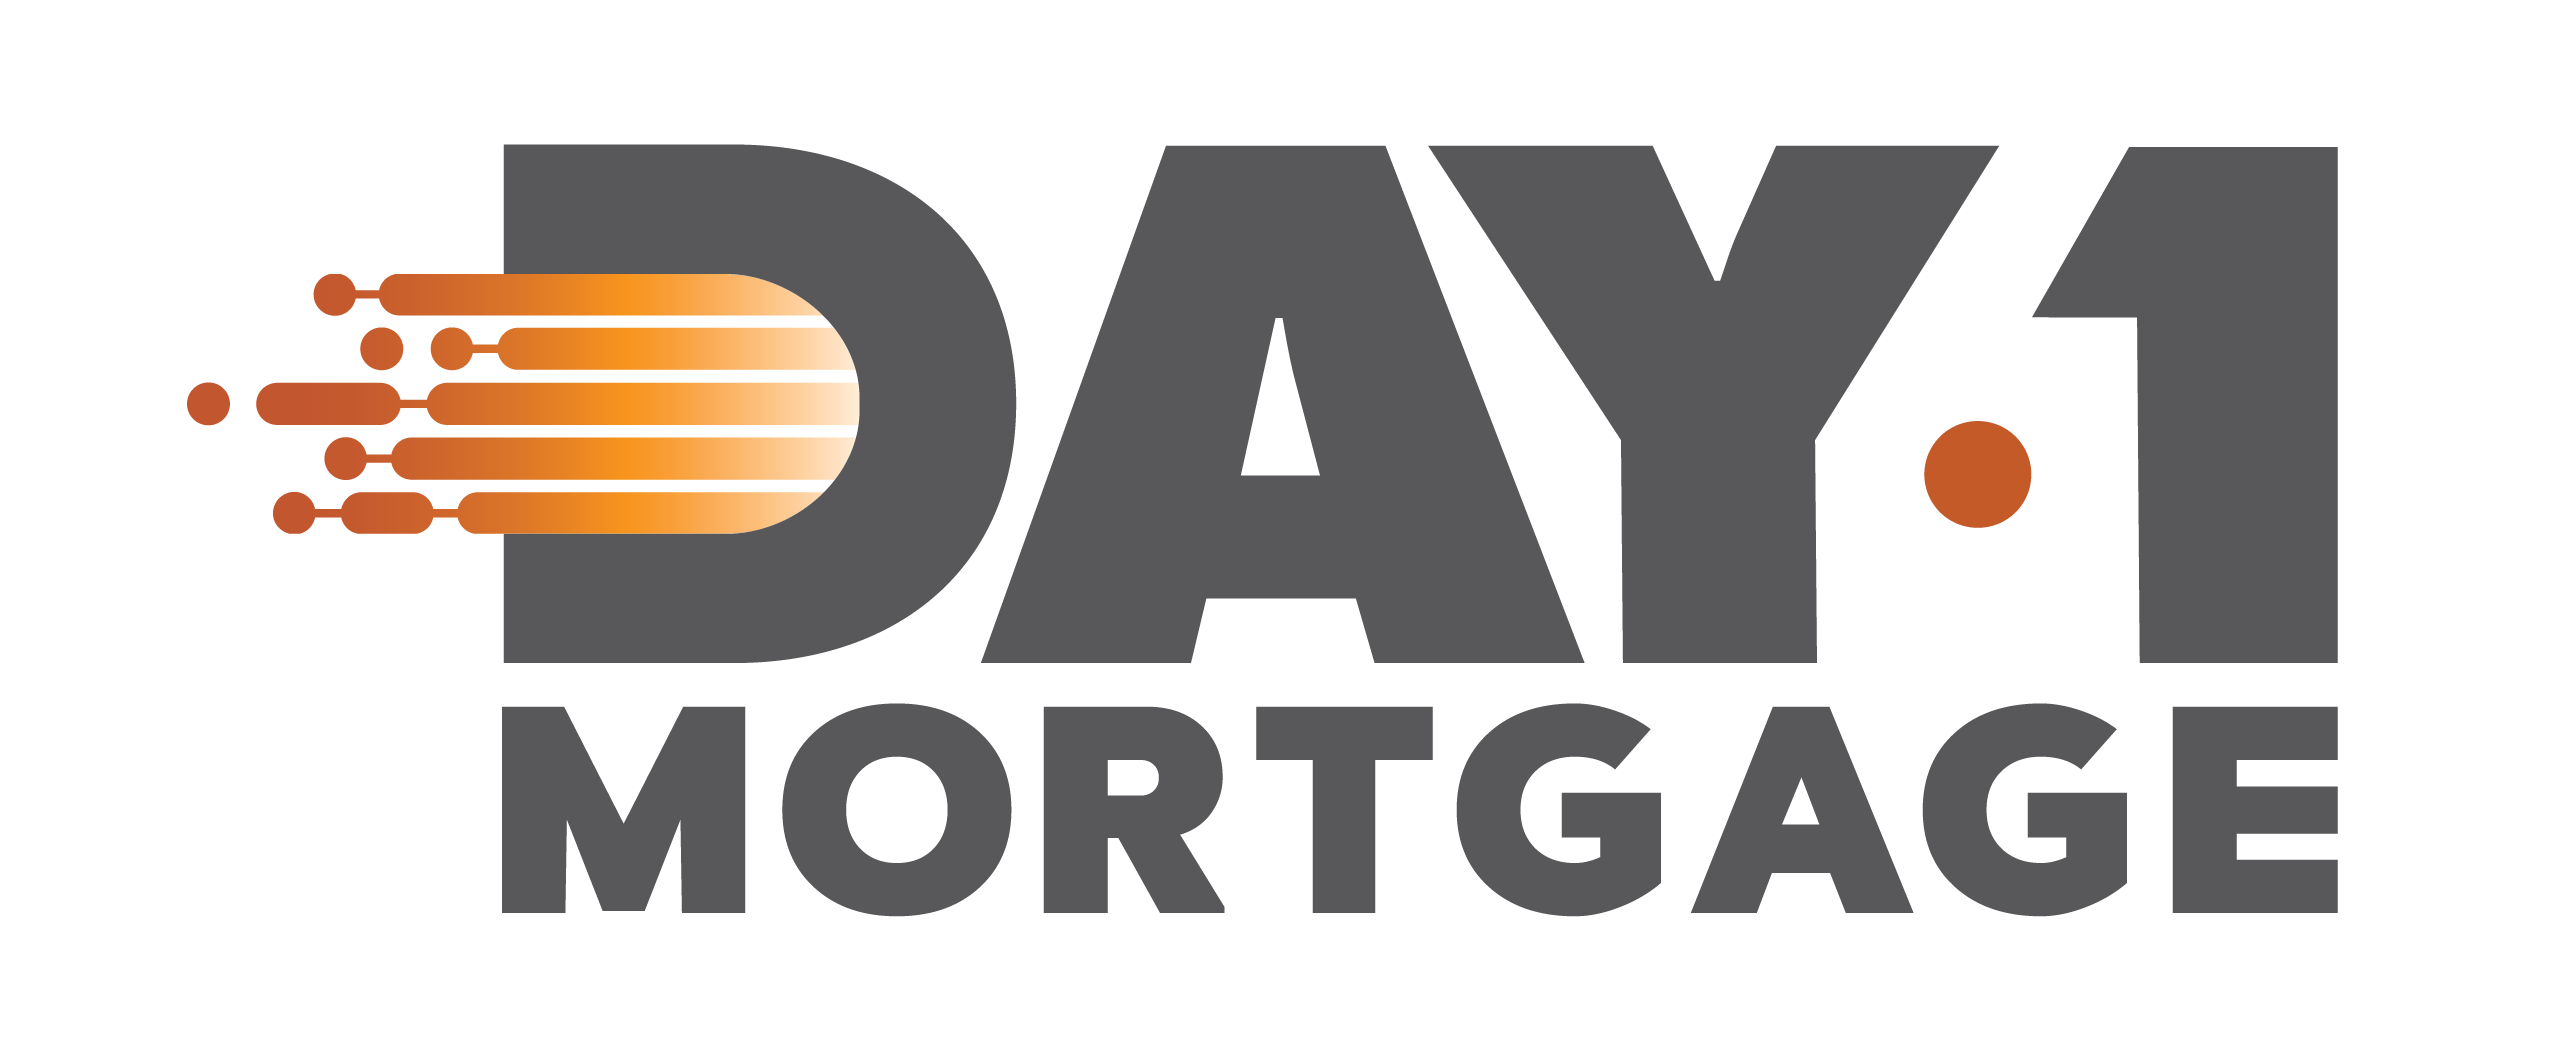 Day 1 Mortgage Logo